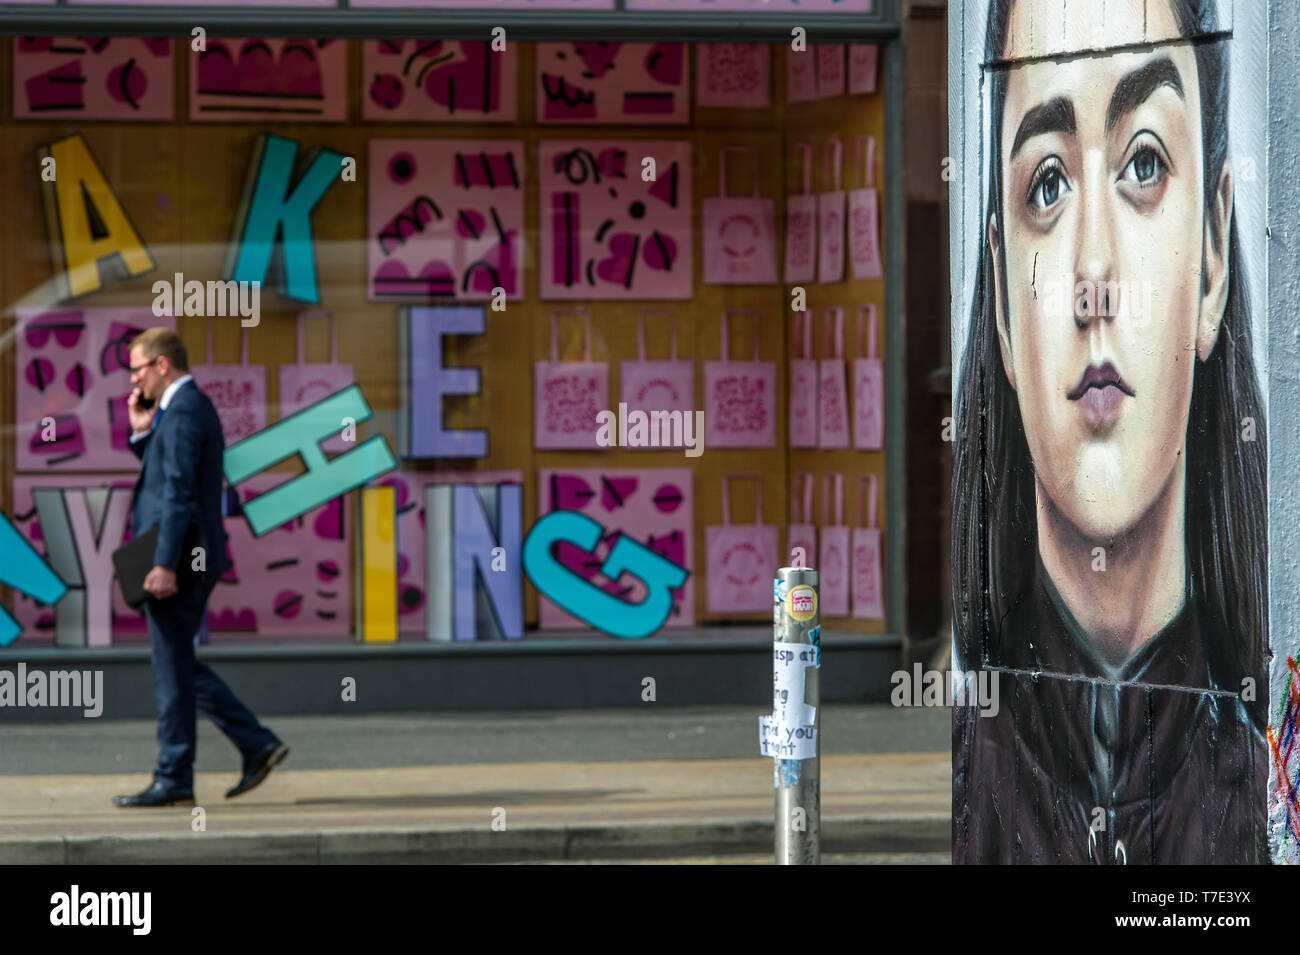 Manchester, UK. 7th May 2019. A new piece of street art has appeared in Stevenson Square in the Northern Quarter of Manchester, UK. The art work depicts the Game of Thrones character Arya Stark, played by actress Maisie Williams, and was created by artist Akse, the French-born street artist who has been living and working in Manchester since 1997. It's all part of outdoor public art project Outhouse MCR, which oversees the street art-rich part of the city centre. Credit: Paul Heyes/Alamy Live News Stock Photo